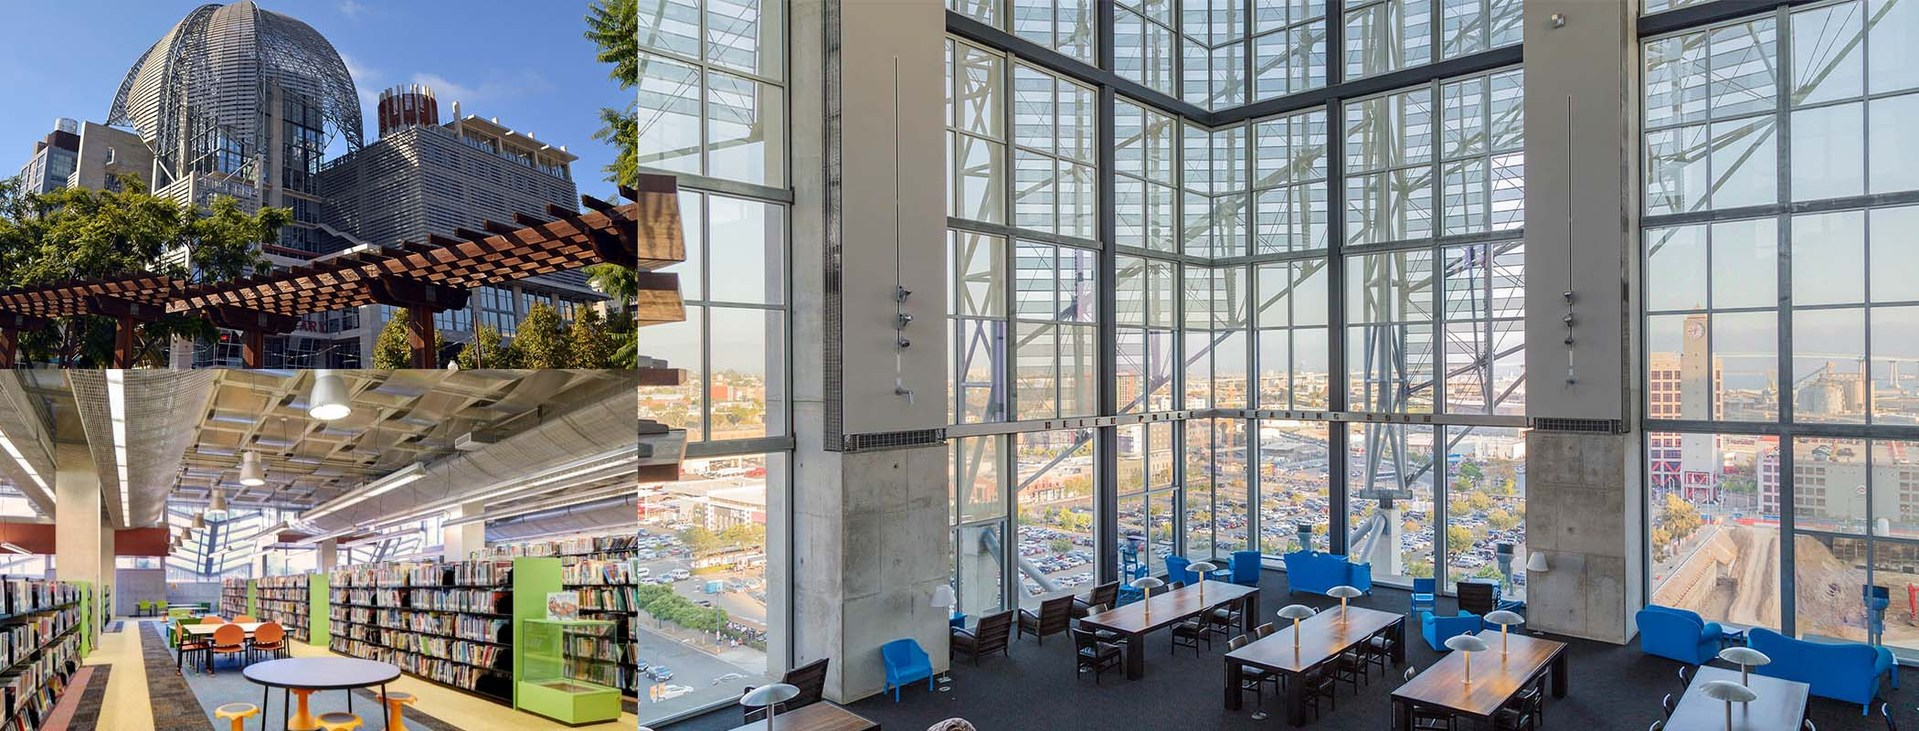 San Diego Central Public Library – Library – E3 Civic High ...